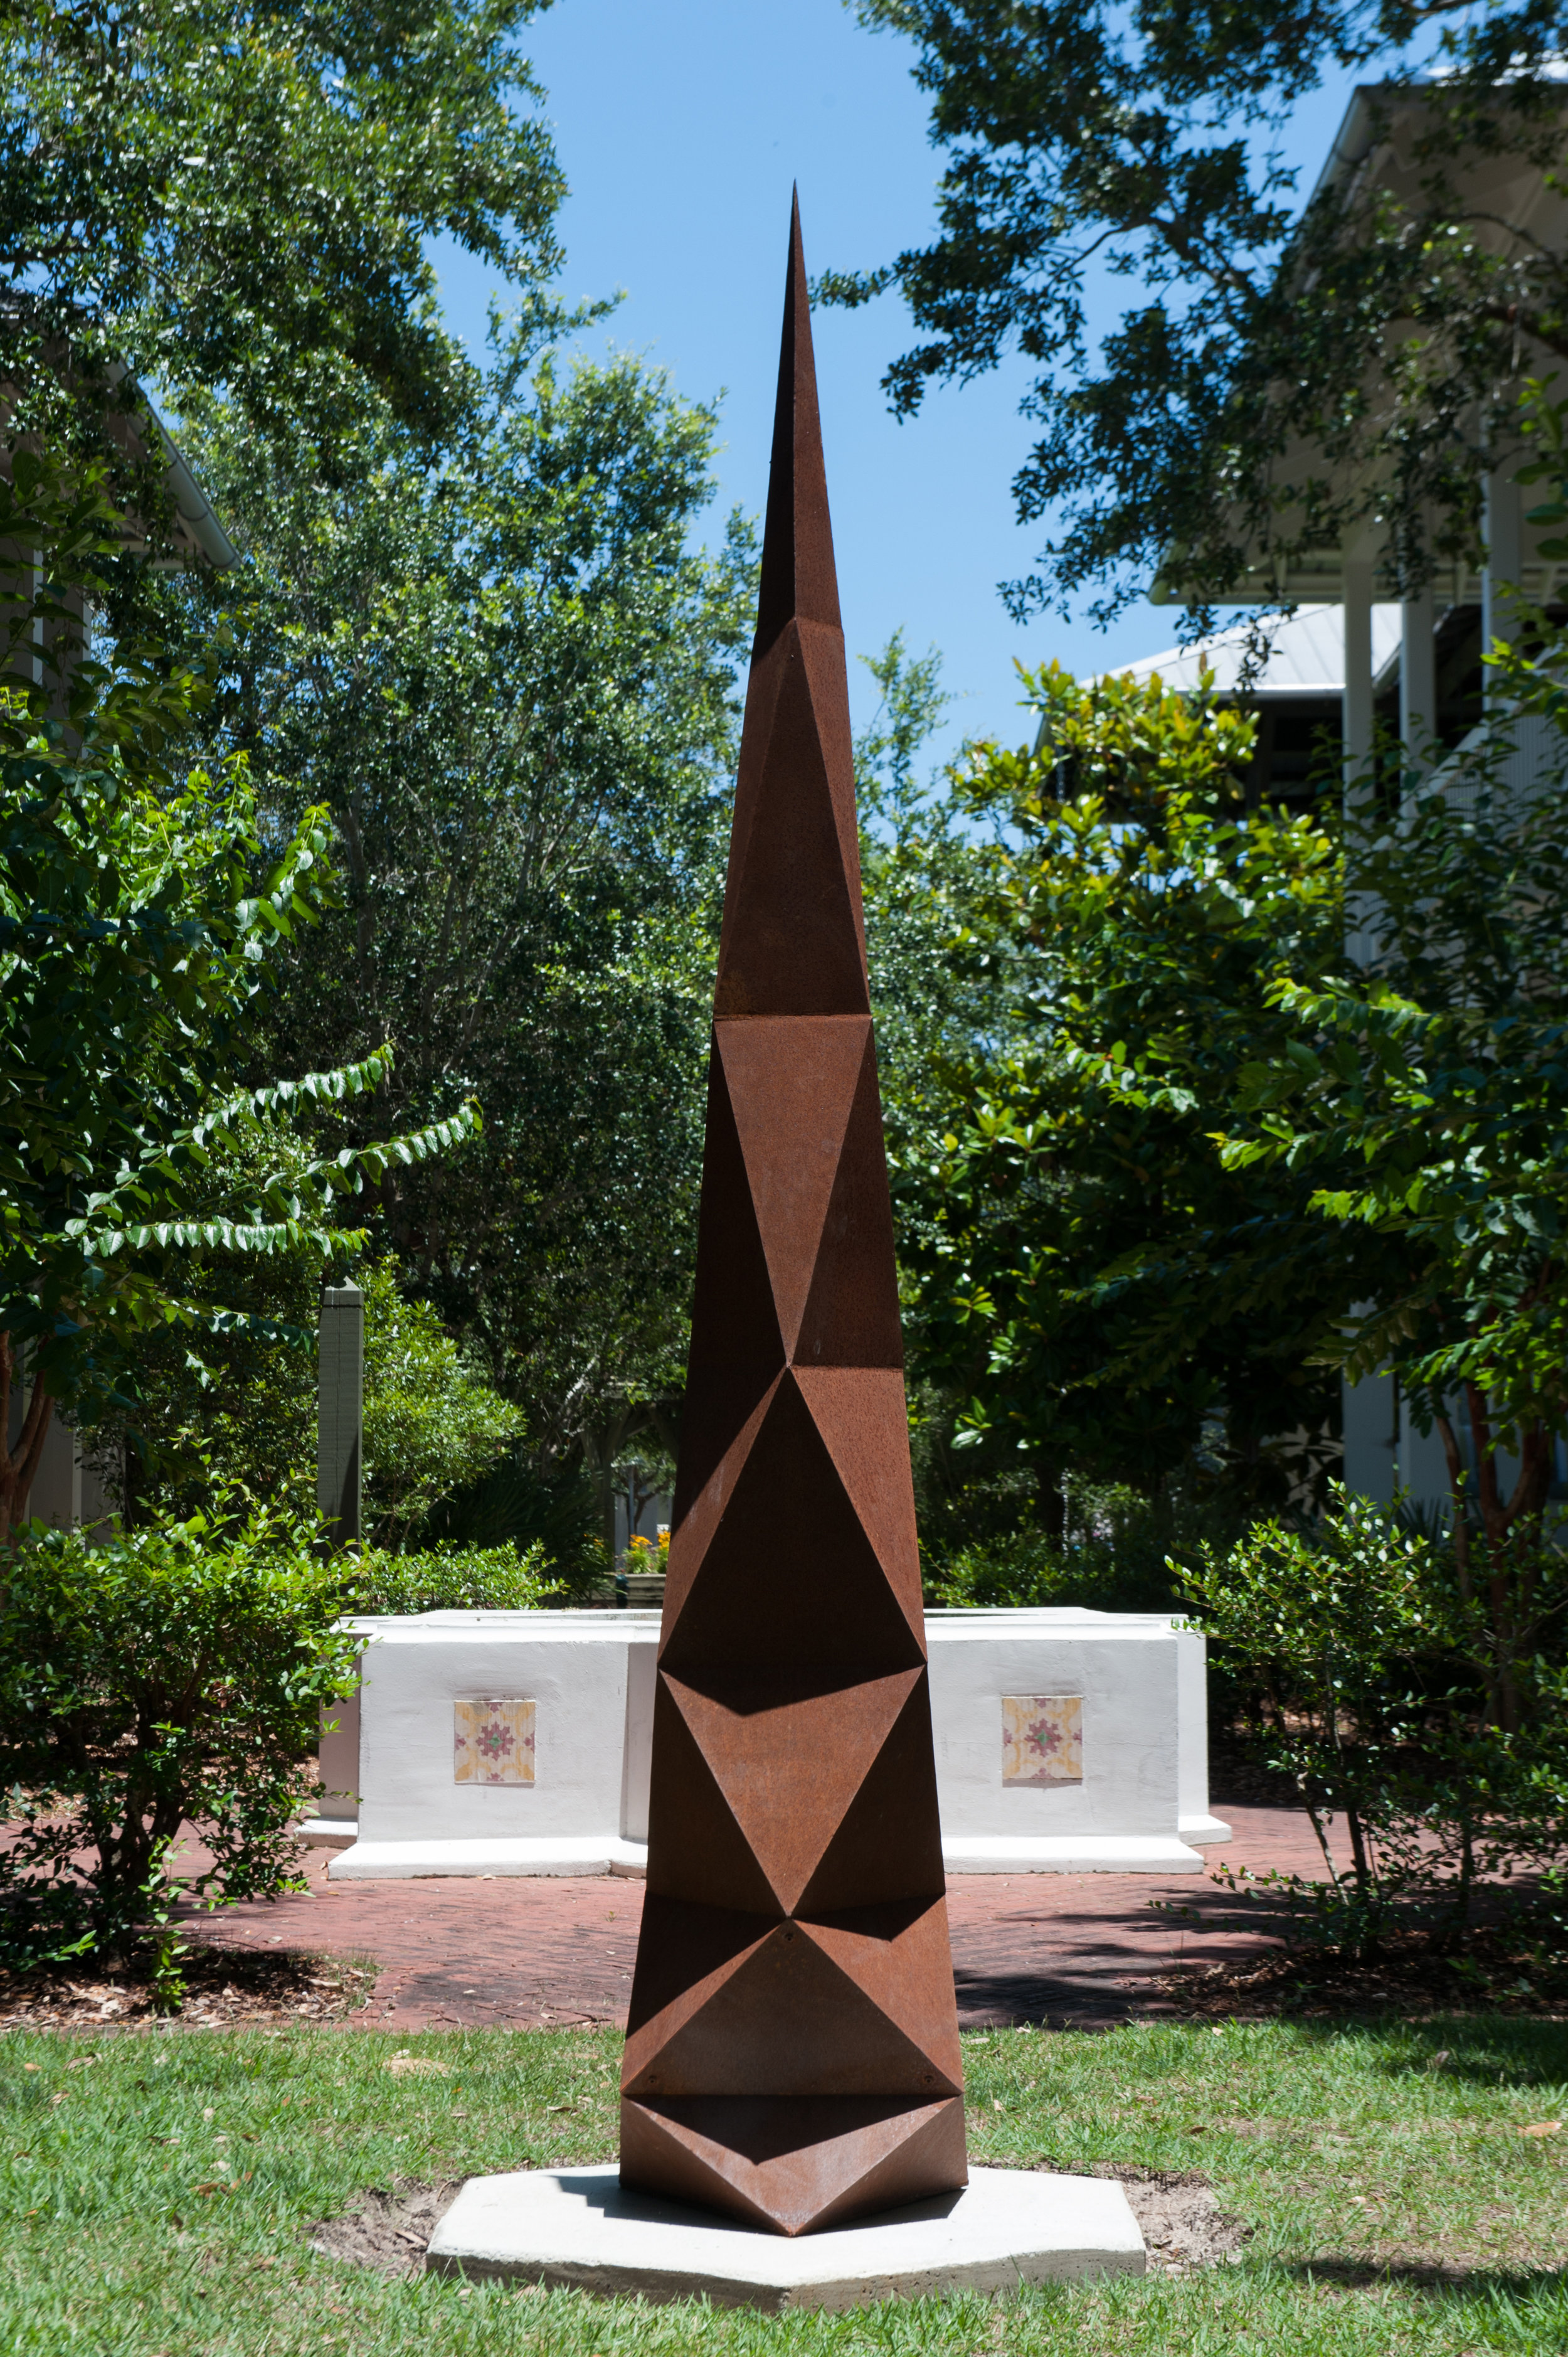 "- MATTHEW MOSHERb. 1982Natick, MassachusettsVajramantrabhiru, 2017Weathering steel21"" x 21"" x 108""$8,770This steel sculpture uses a series of increasing triangular facets to create a geometric form. Each face catches light in a unique way because it is at a different angle relative to the others. They reach skyward, defying gravity.. . .Vajramantrabhiru is triangular. This causes the sculpture to appear to change radically in form when viewed from different angles; sometimes it seems to be a smooth spire while from a different perspective it is a jagged zig zag. The sculpture is named after the eighth guardian deity in Tibetan Buddhism, the protector against false speech."